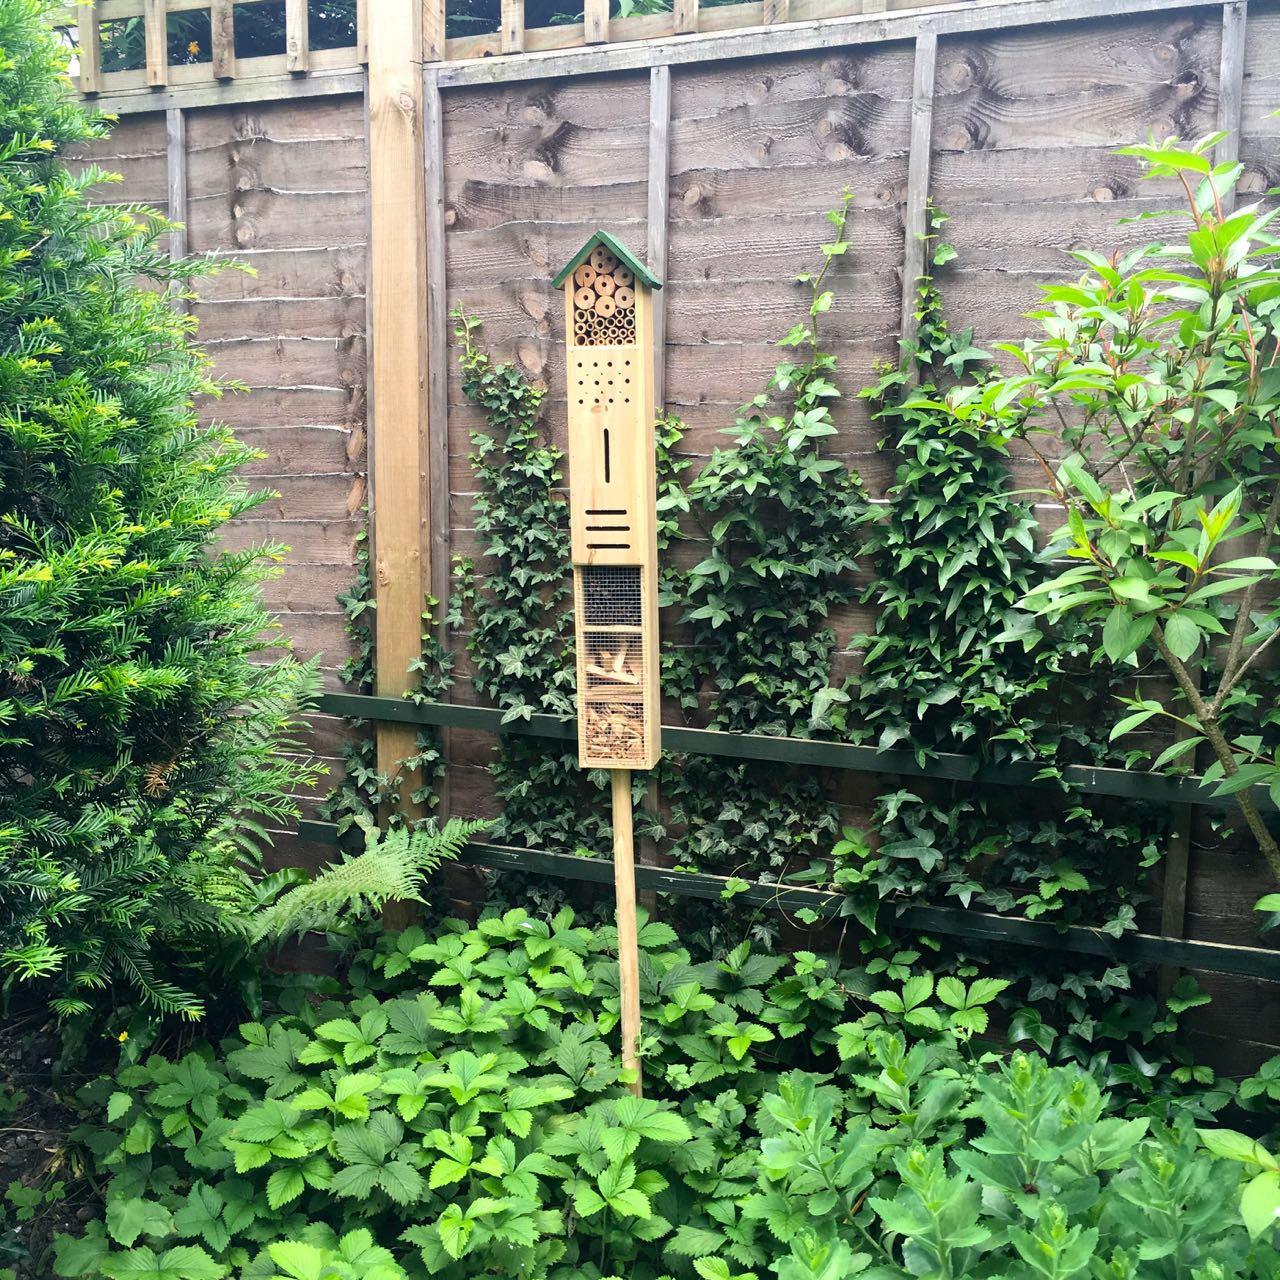 A HIGH-RISE INSECT HOUSE